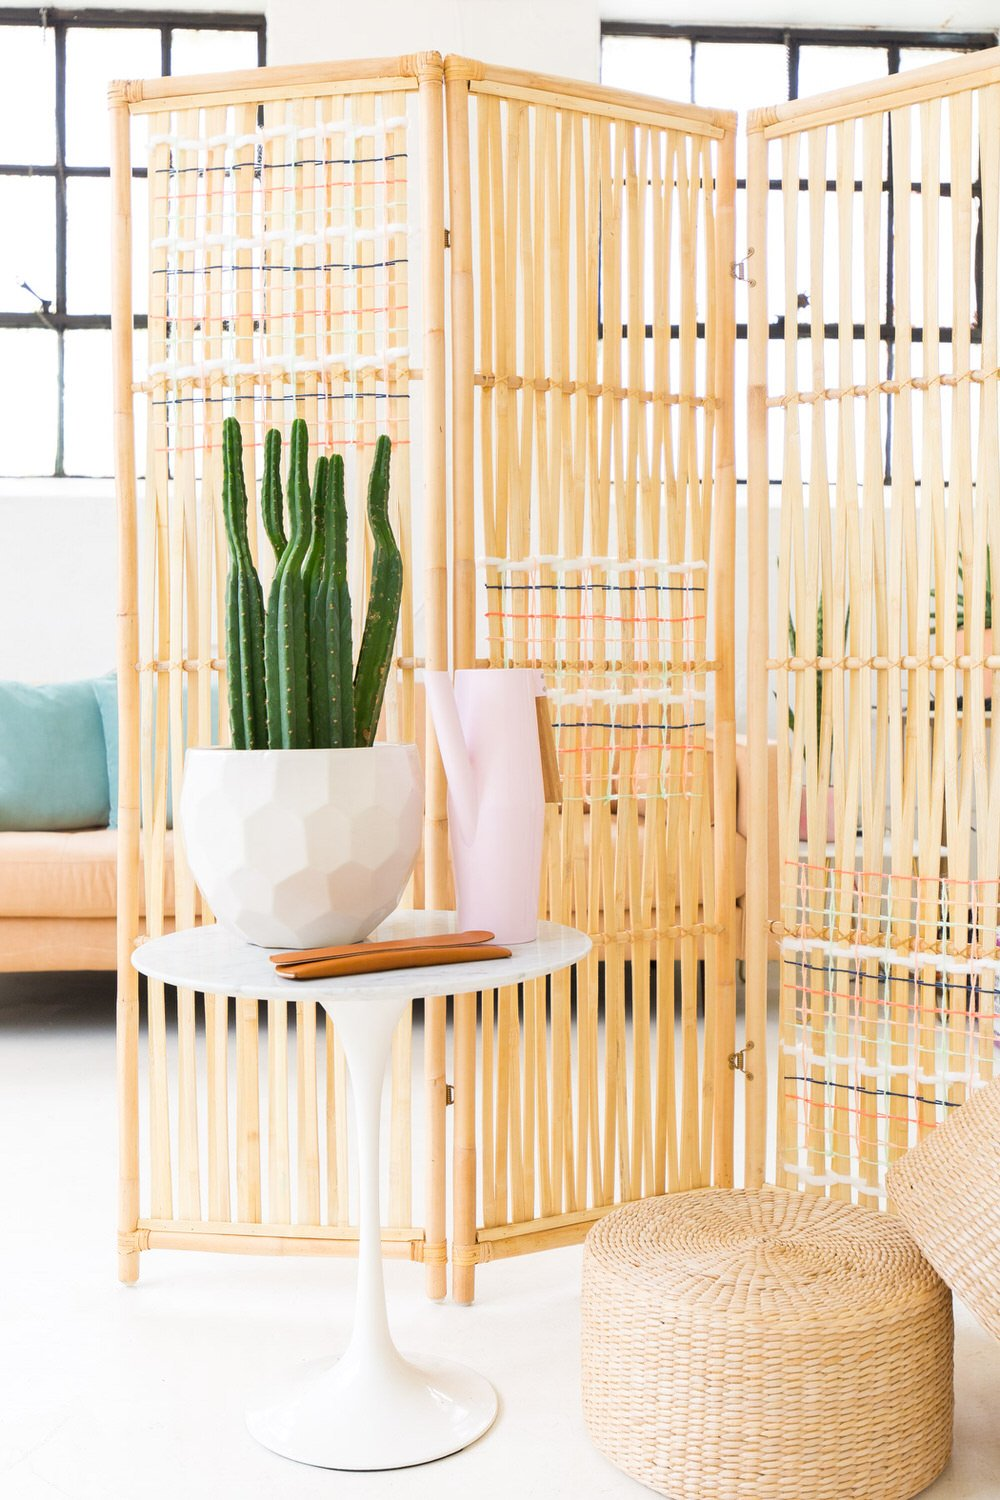 Affordable Nice Small Room Dividers Simple Interior Want more room dividers with Ikea hacks? Good, we got that! This DIY room  divider screen from u0027Lady Exploreru0027 is being used as a decorative screen,  ...